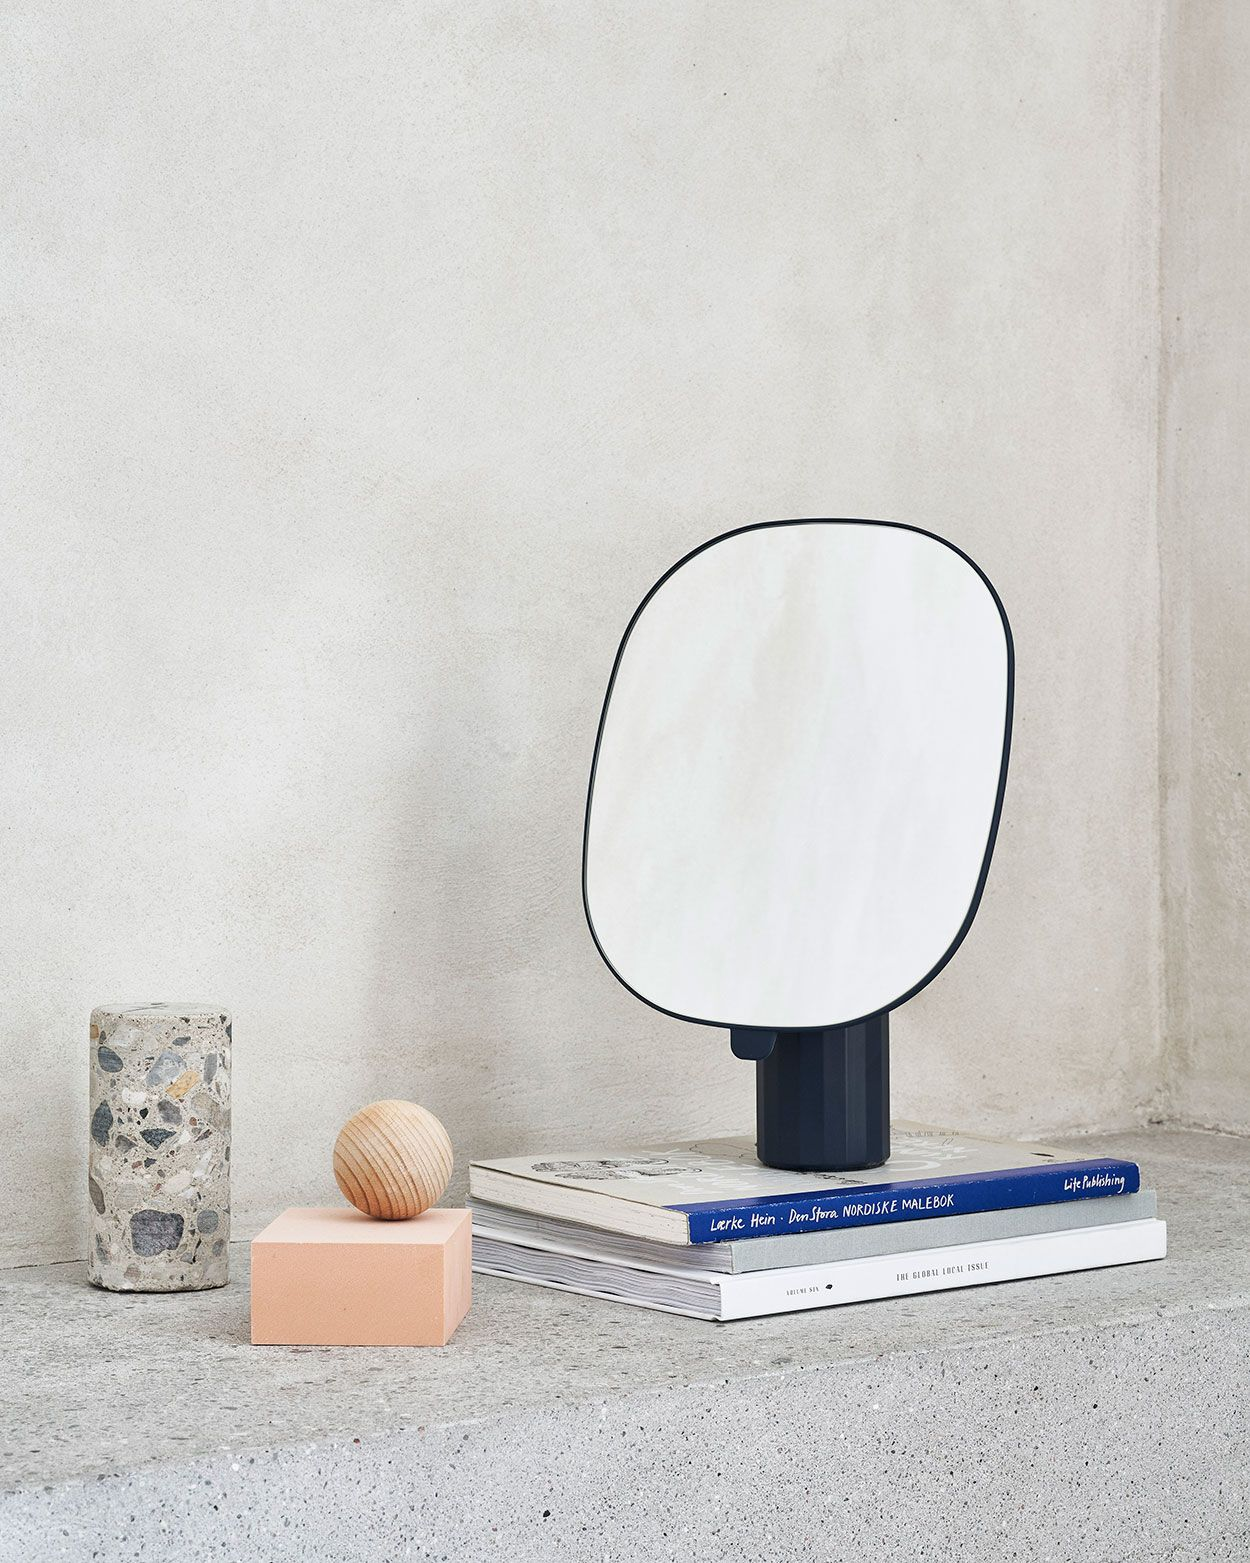 Mimic Mirror brings new perspectives to the traditional table mirror ...